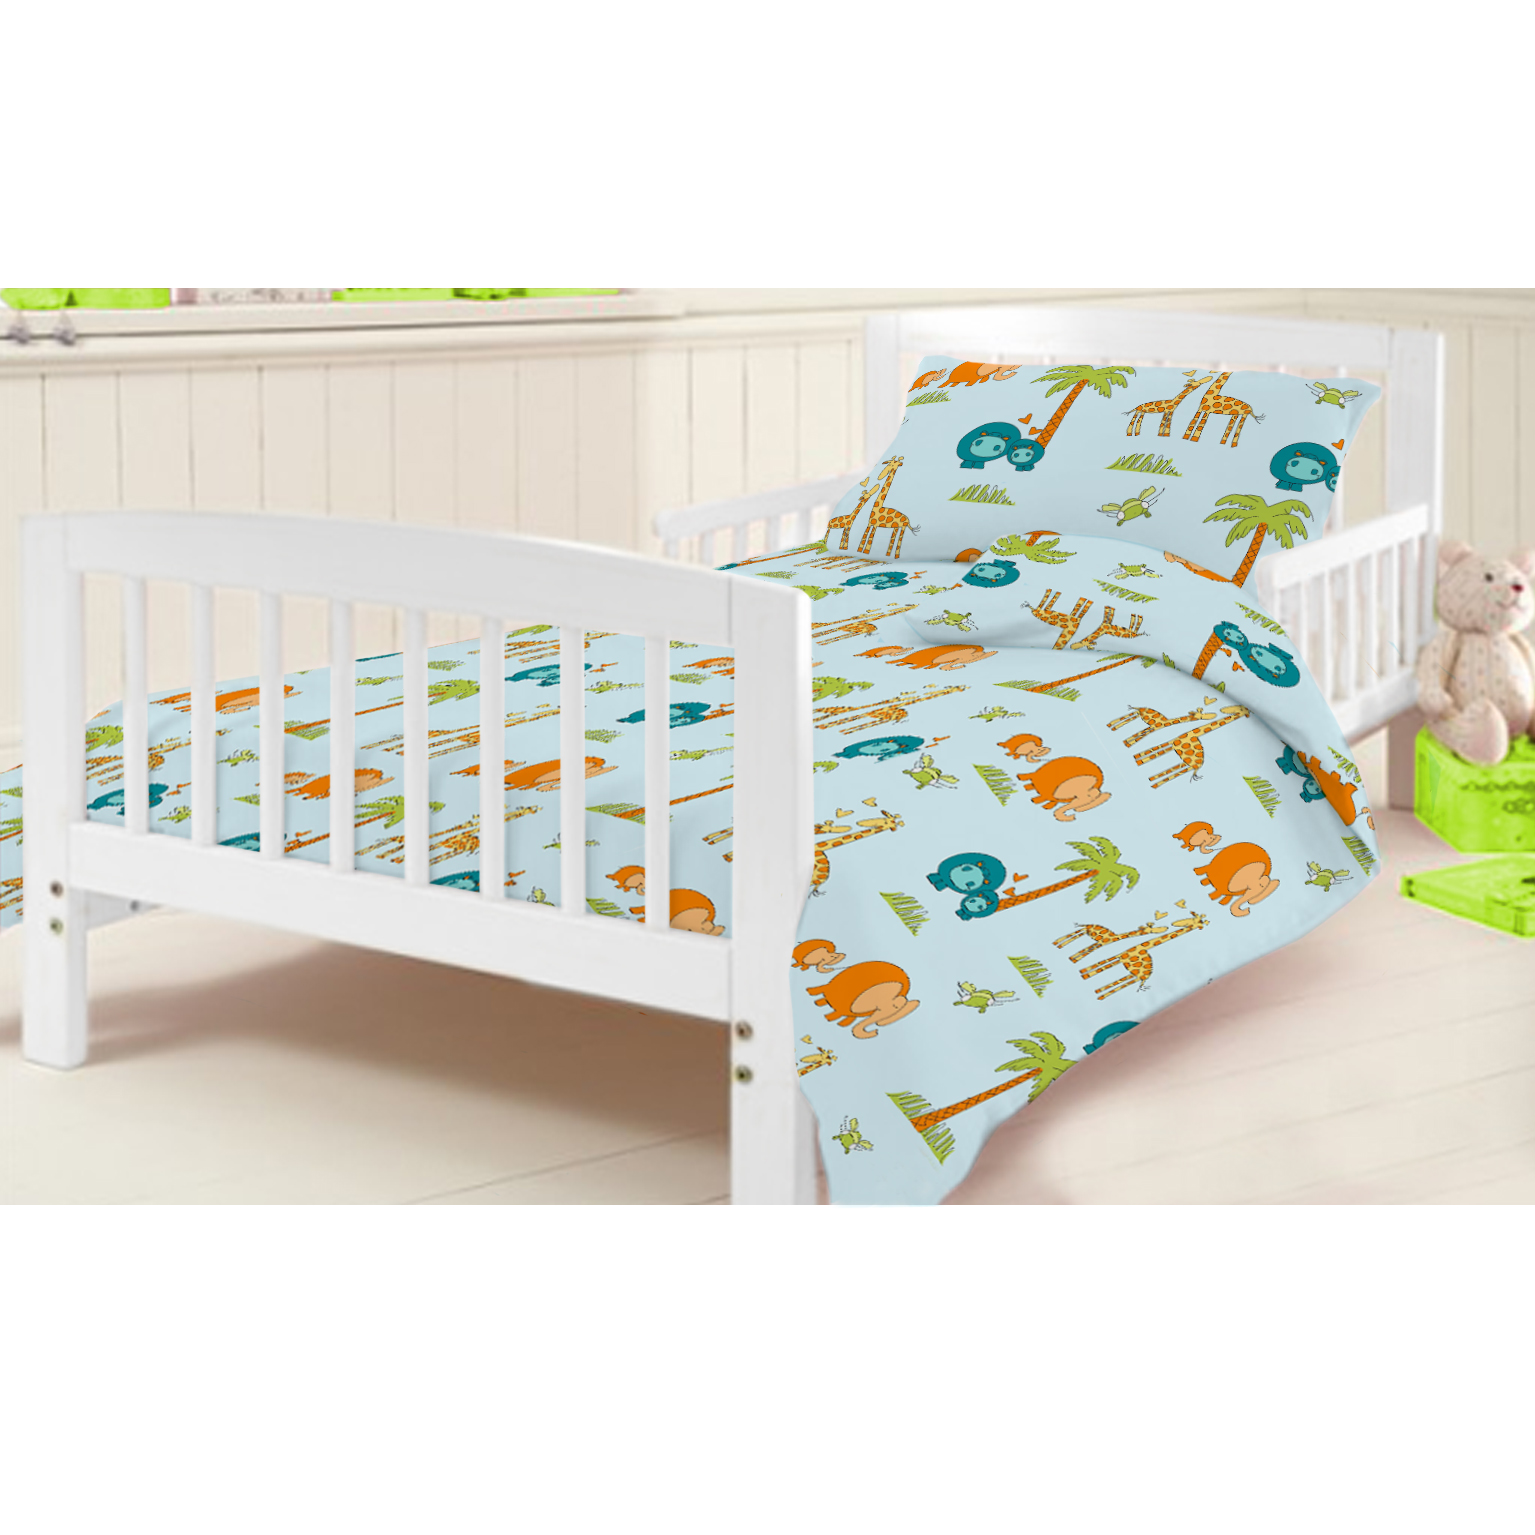 Find great deals on eBay for cot duvet. Shop with confidence. Skip to main content. eBay: 3 PIECE PCS BABY COT BEDDING / DUVET SET WITH SAFETY COTBED BUMPER / cm See more like this. 2 Pcs Kids Duvet Cover Pillowcase Bedding Set For Crib Pram Cot Bed .